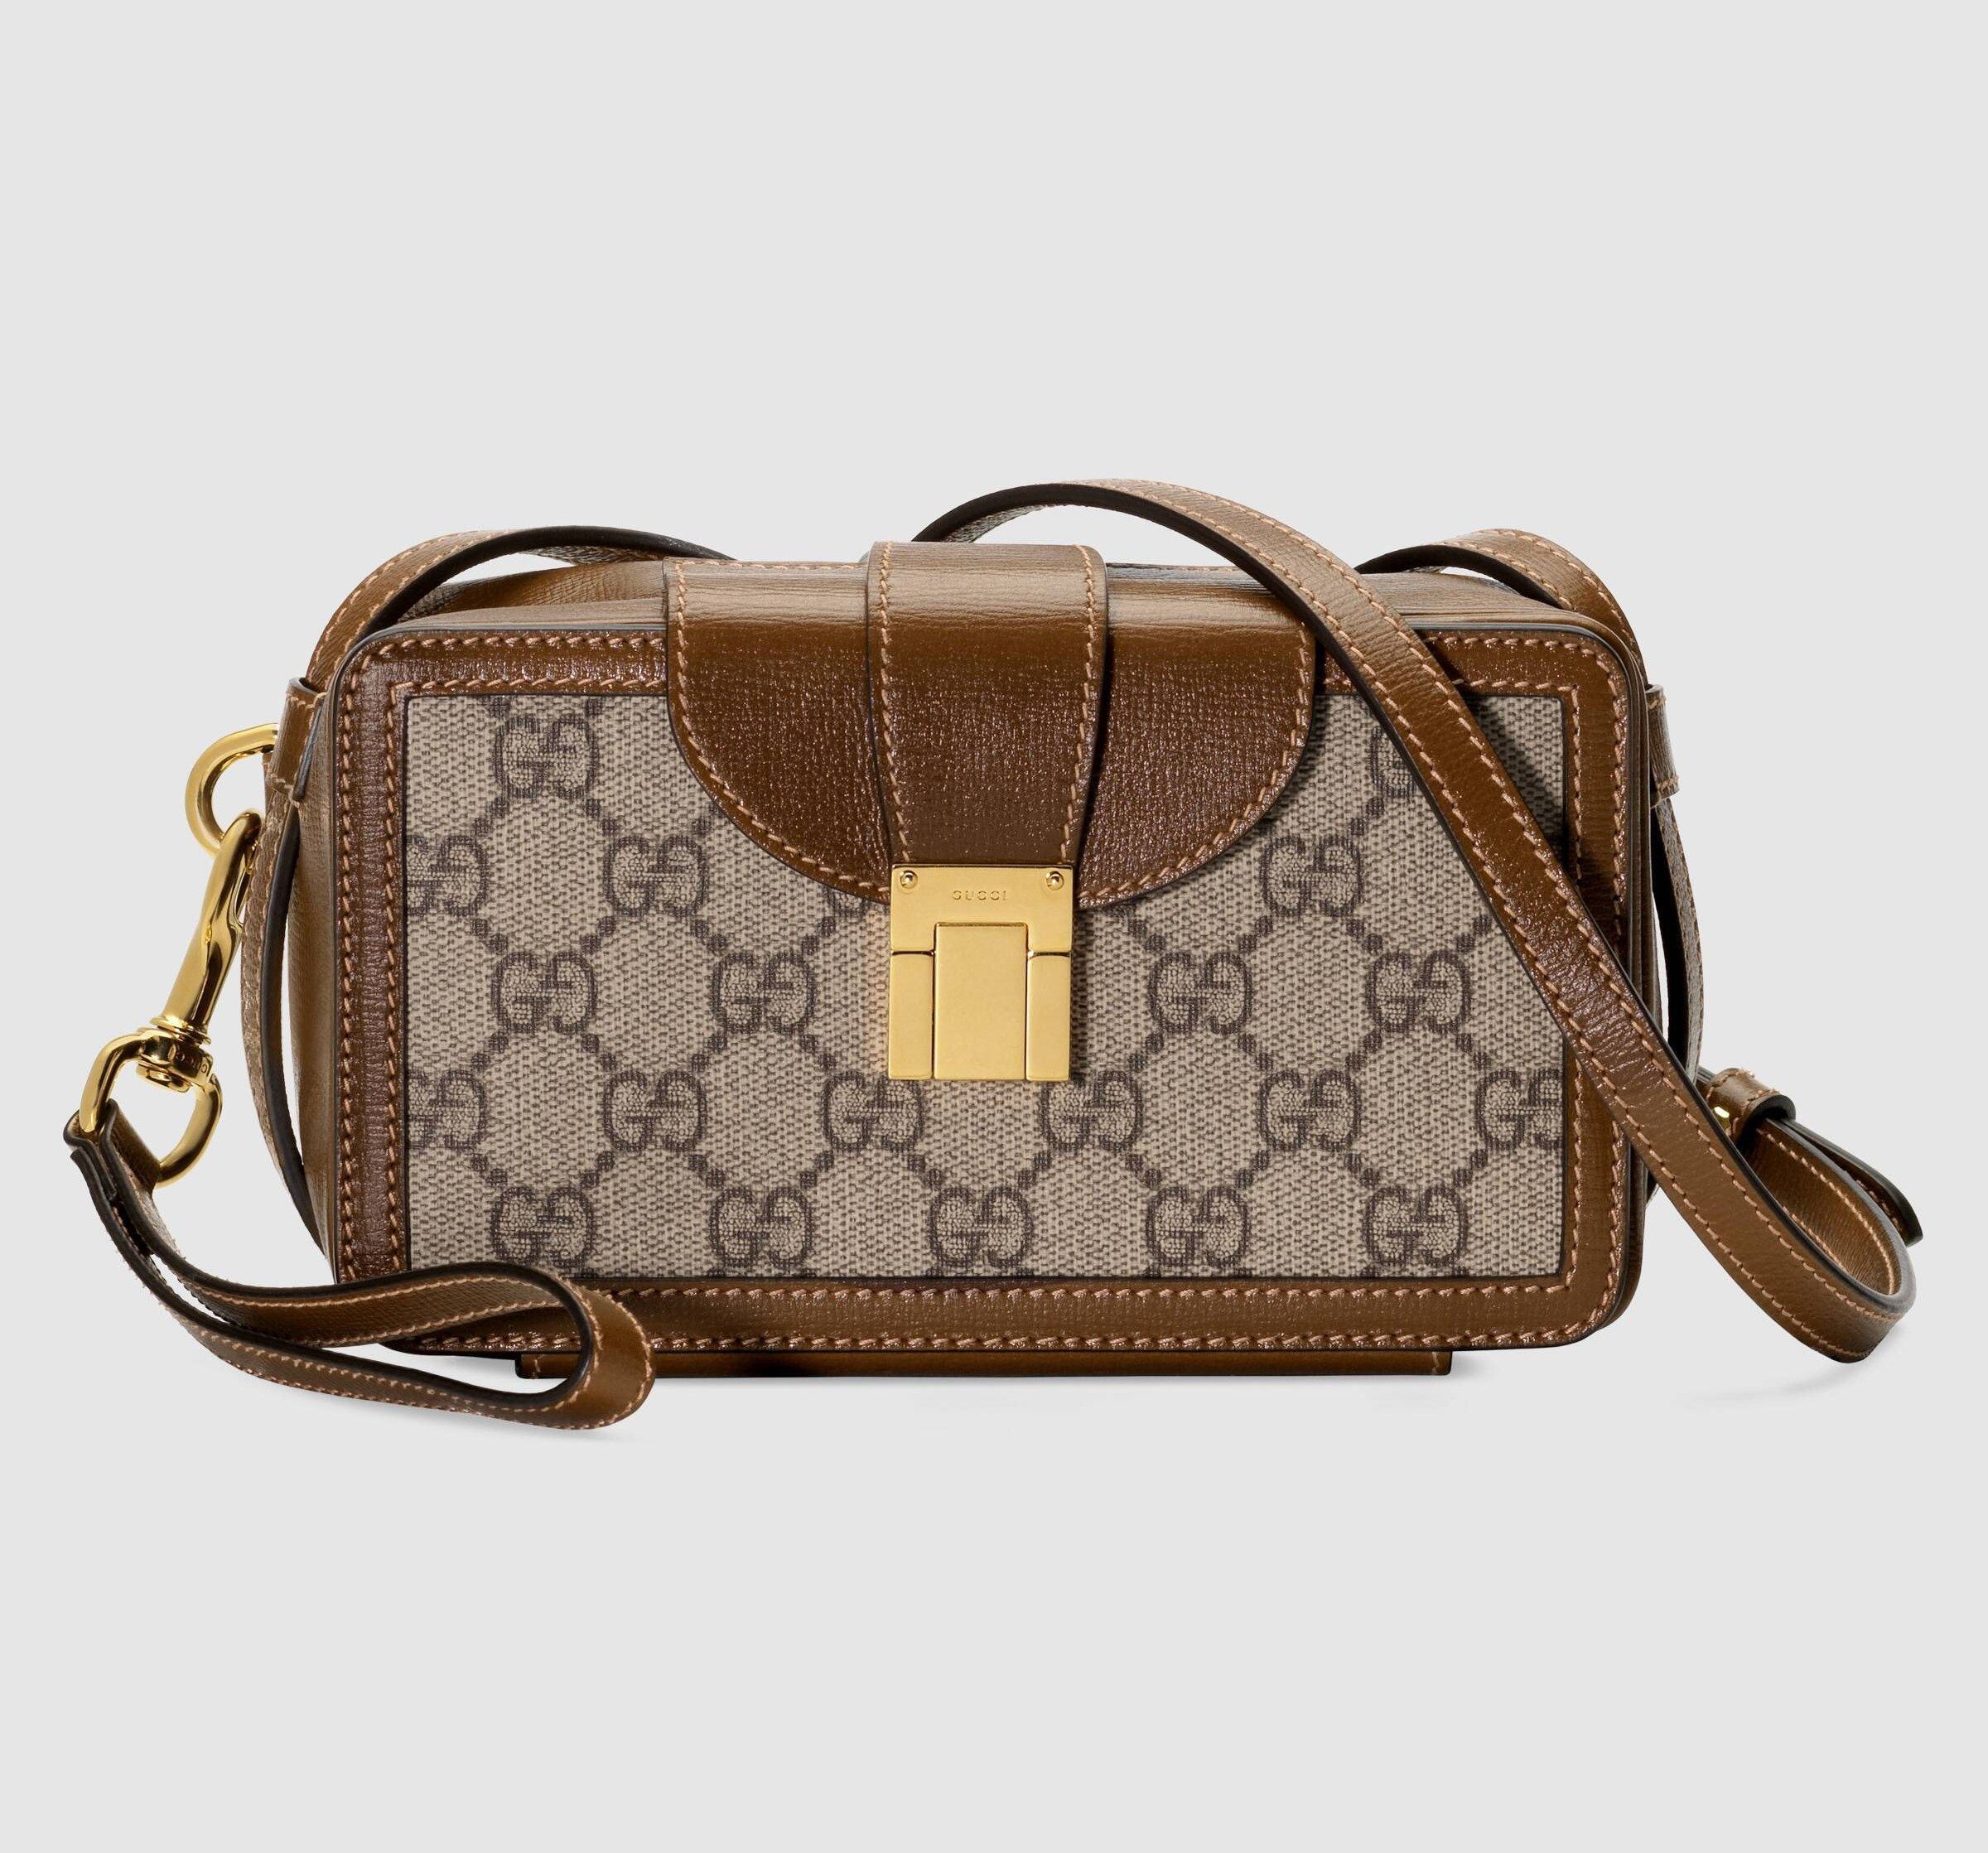 Gucci GG Mini Bag with Clasp Closure 614368 Brown Leather